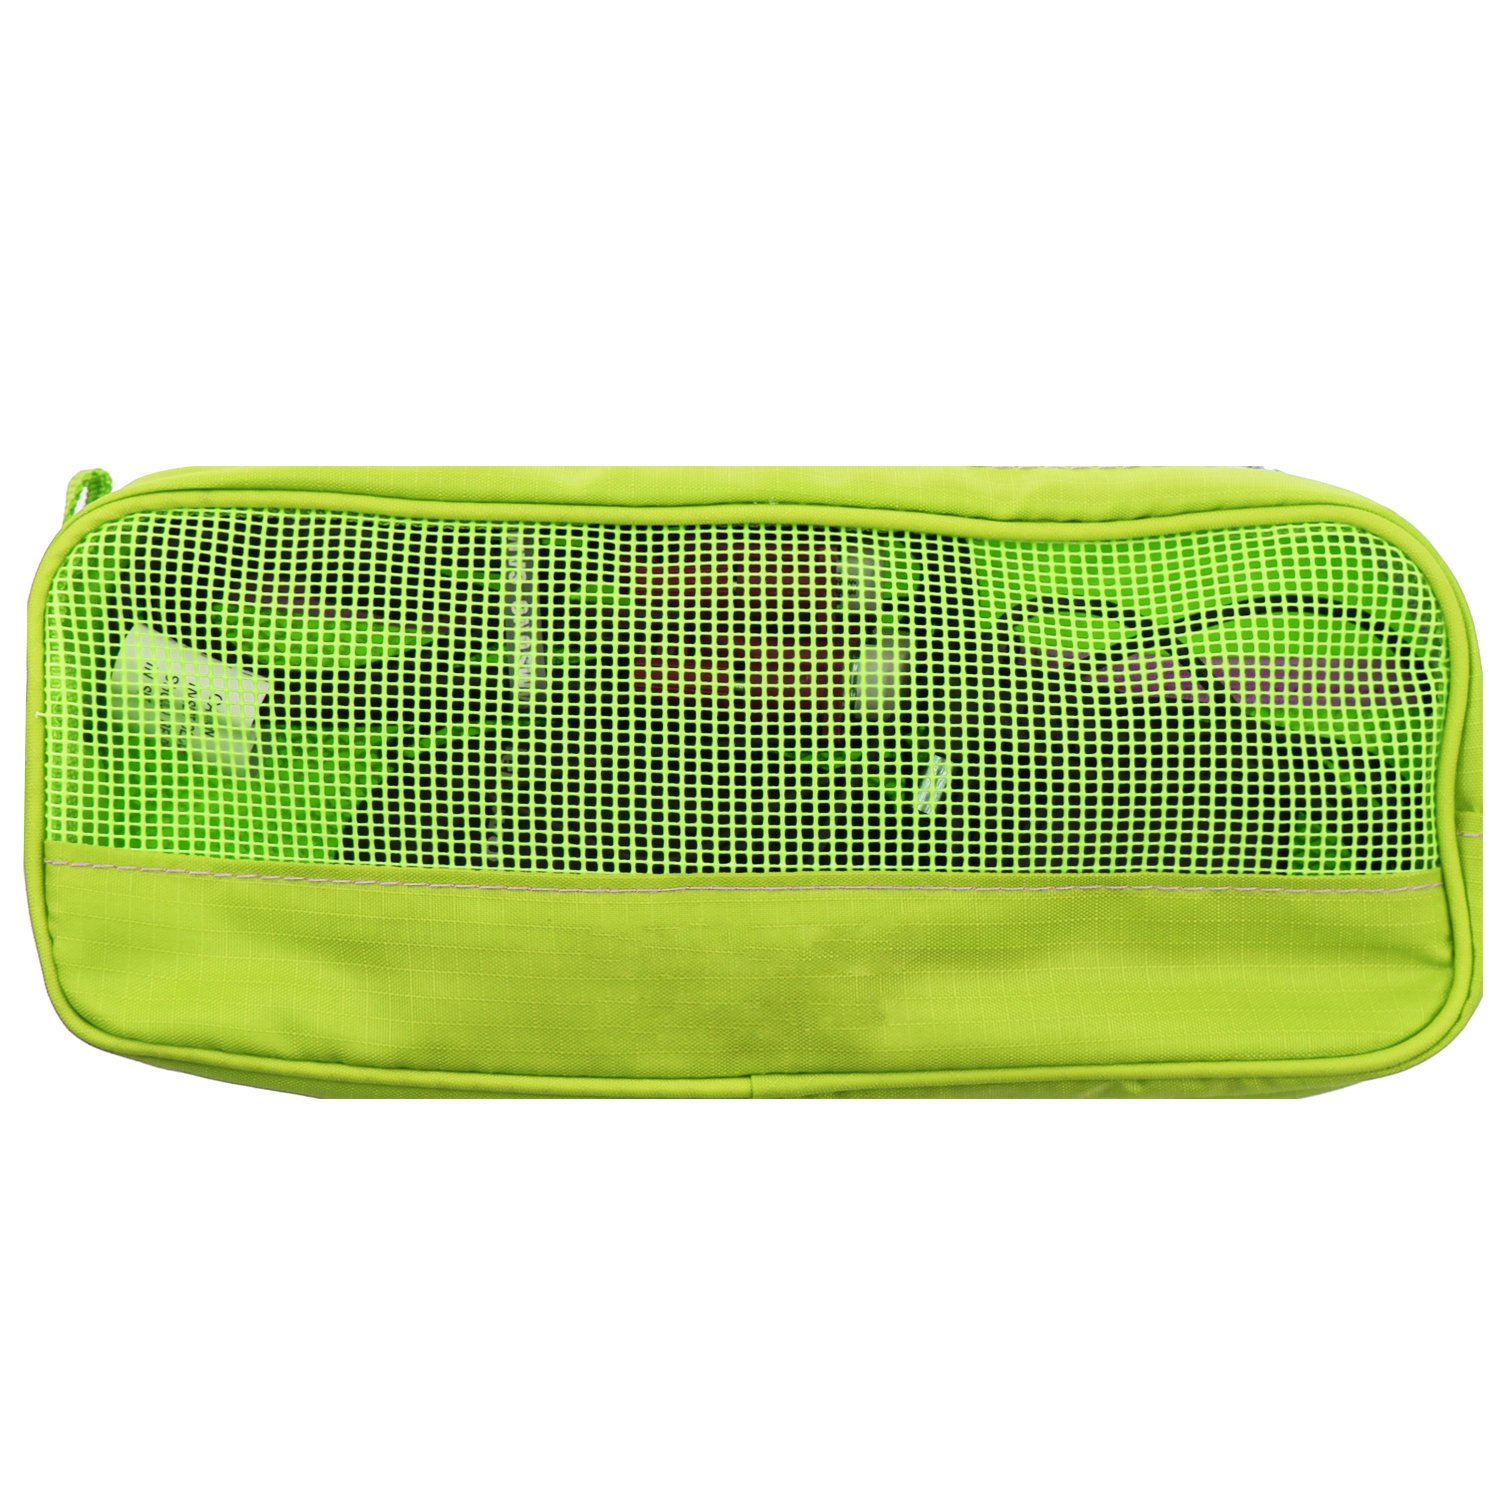 Nylon Slim Zipper Mesh Travel Organizer Carry Case Bag for Bluetooth, Wireless In-Car FM Transmitter, Adaptor, USB Charging, HDMI VGA Line In/Out Cable OTG Cord